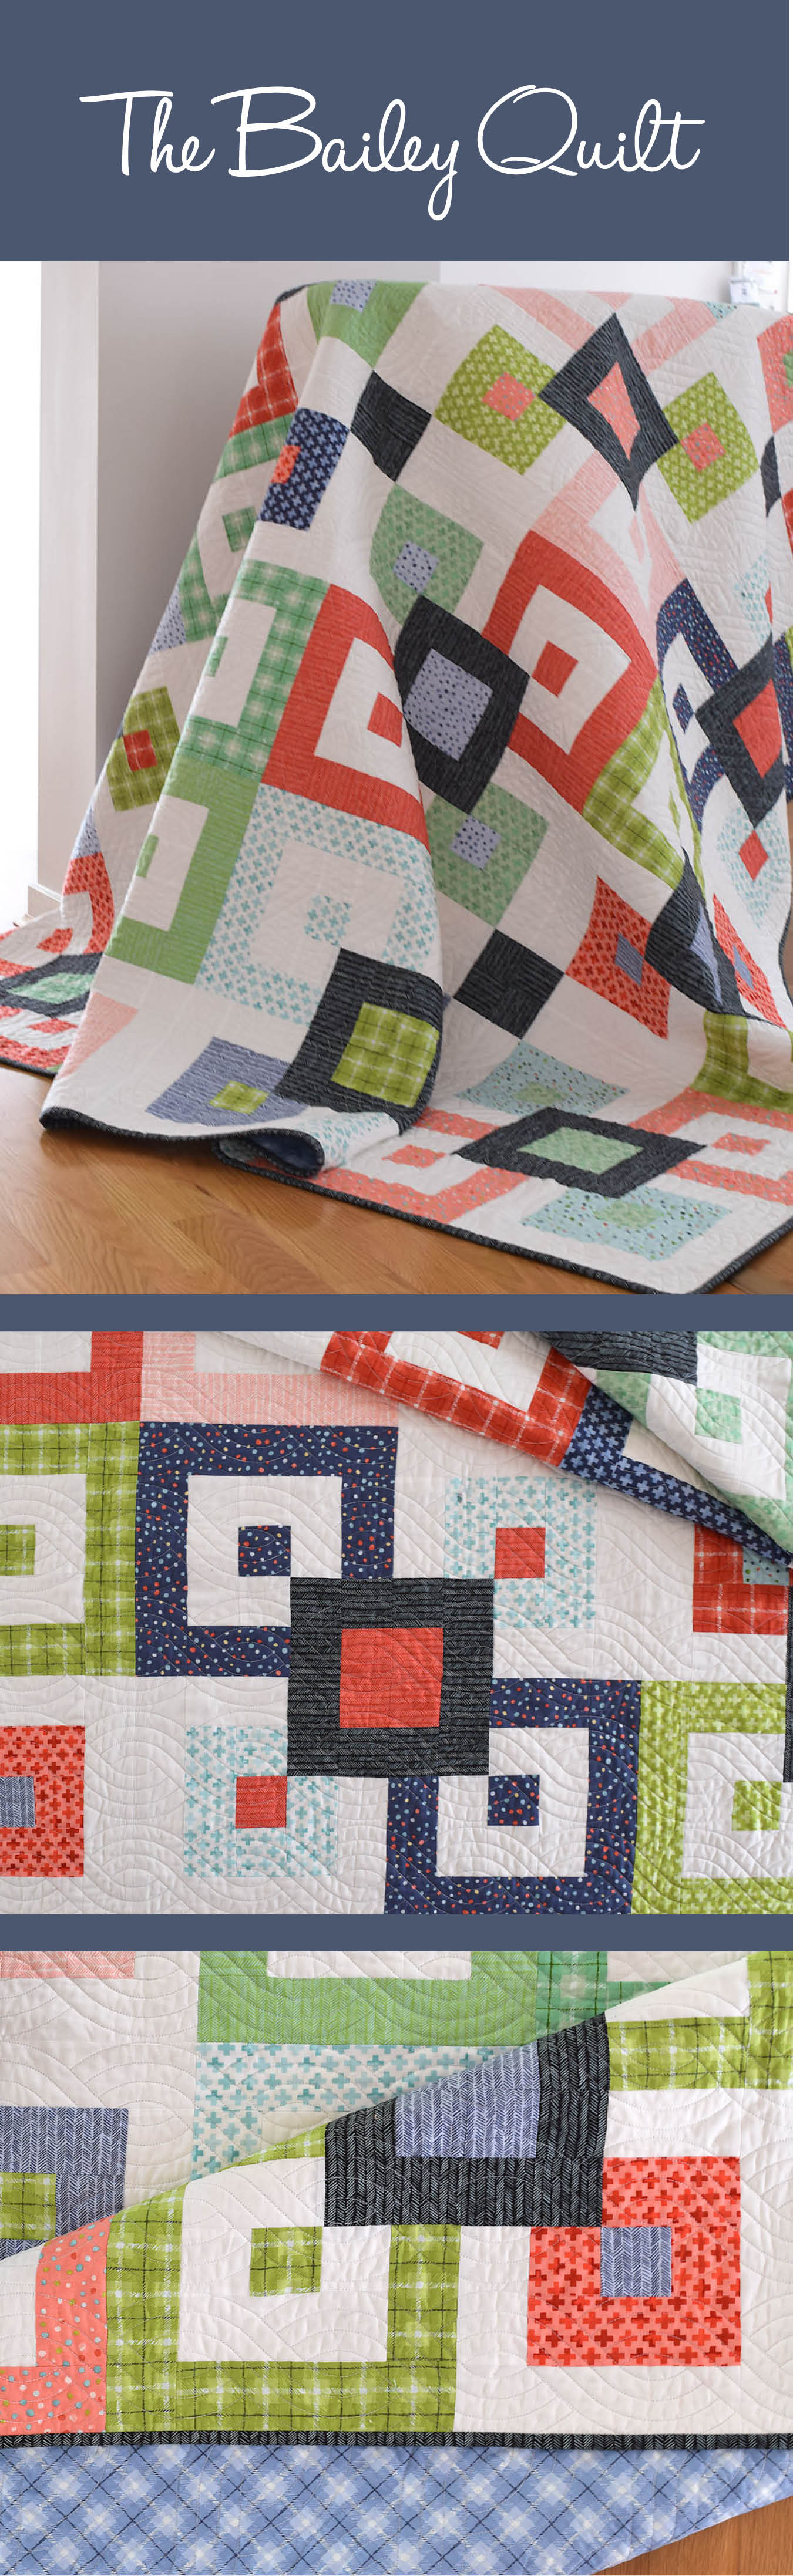 Bailey Quilt Pattern - She Quilts A Lot